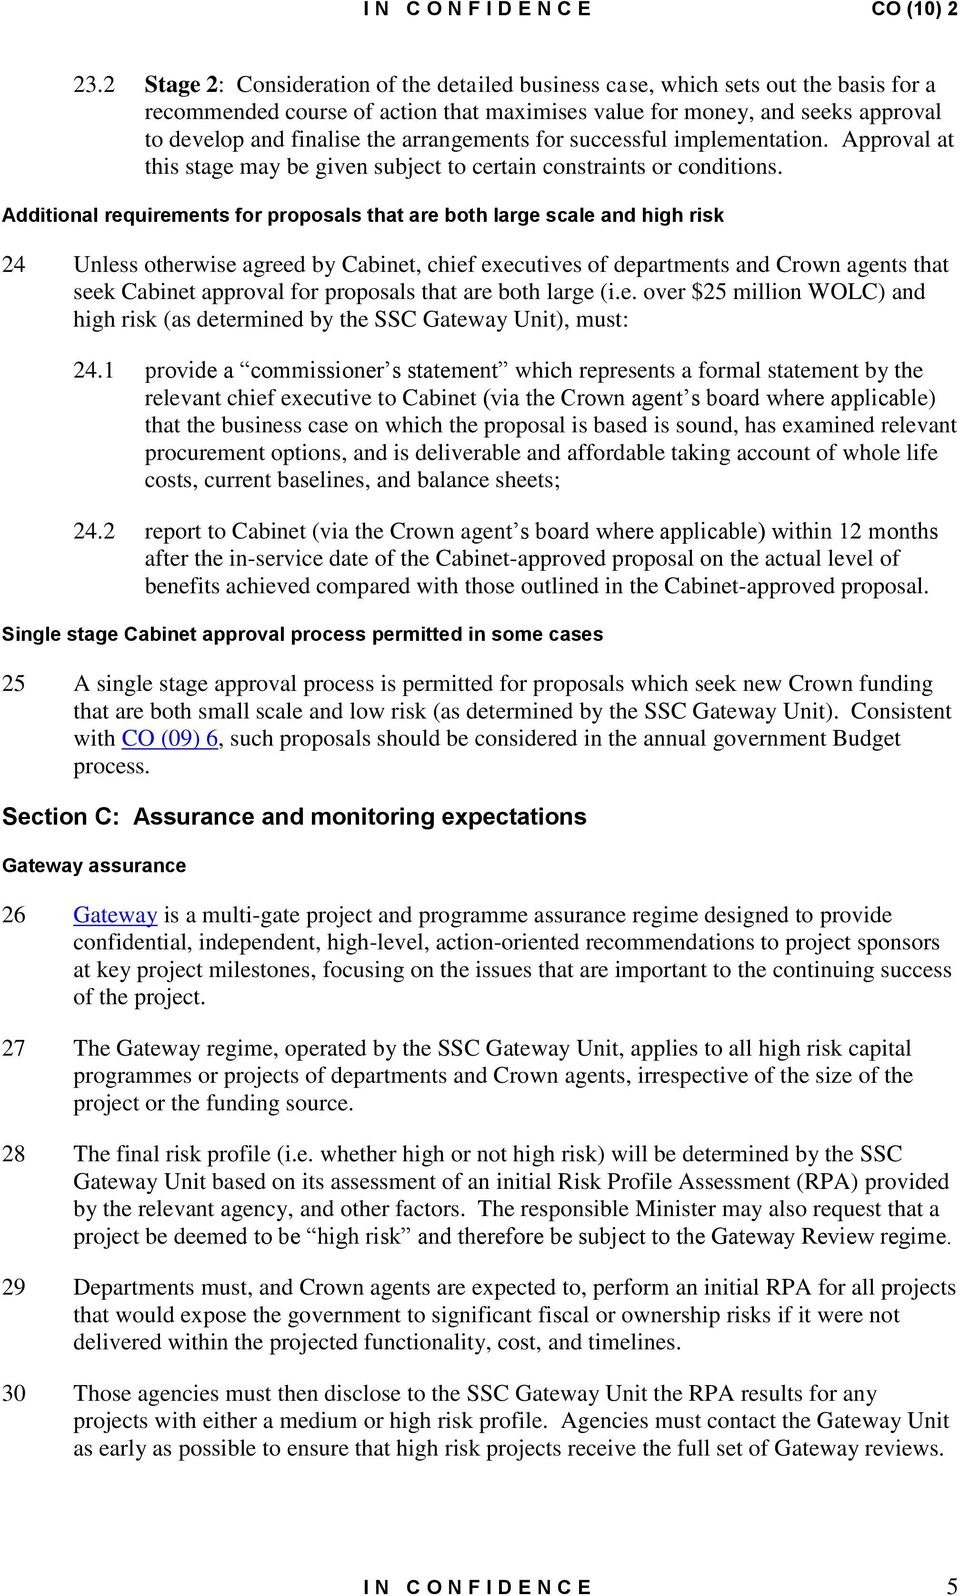 Additional requirements for proposals that are both large scale and high risk 24 Unless otherwise agreed by Cabinet, chief executives of departments and Crown agents that seek Cabinet approval for